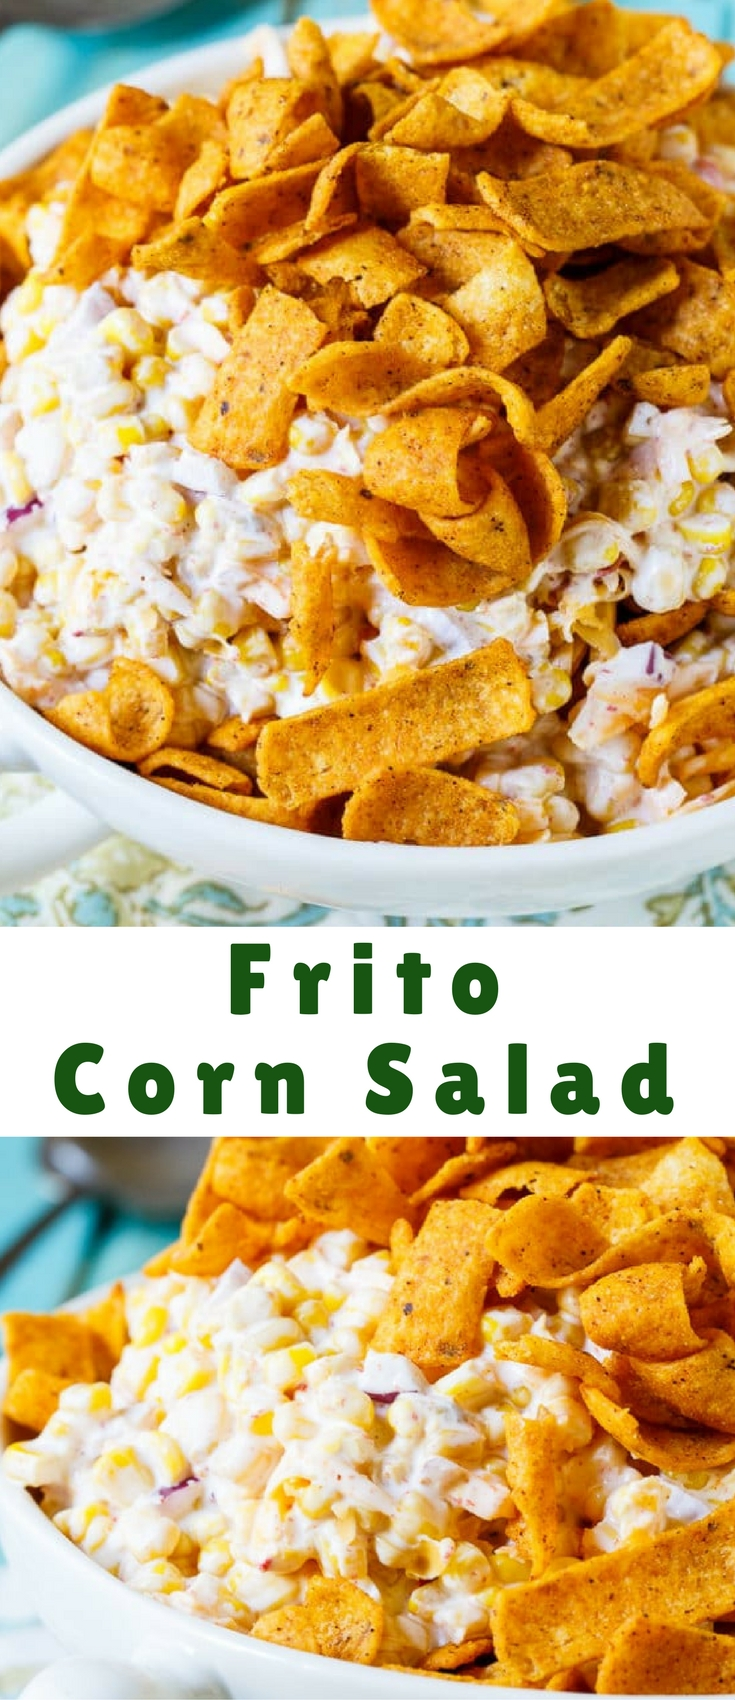 Frito Corn Salad is wonderfully creamy with lots of shredded cheddar cheese and crunchy, salty Frito corn chips. Great for summer potlucks and picnics!